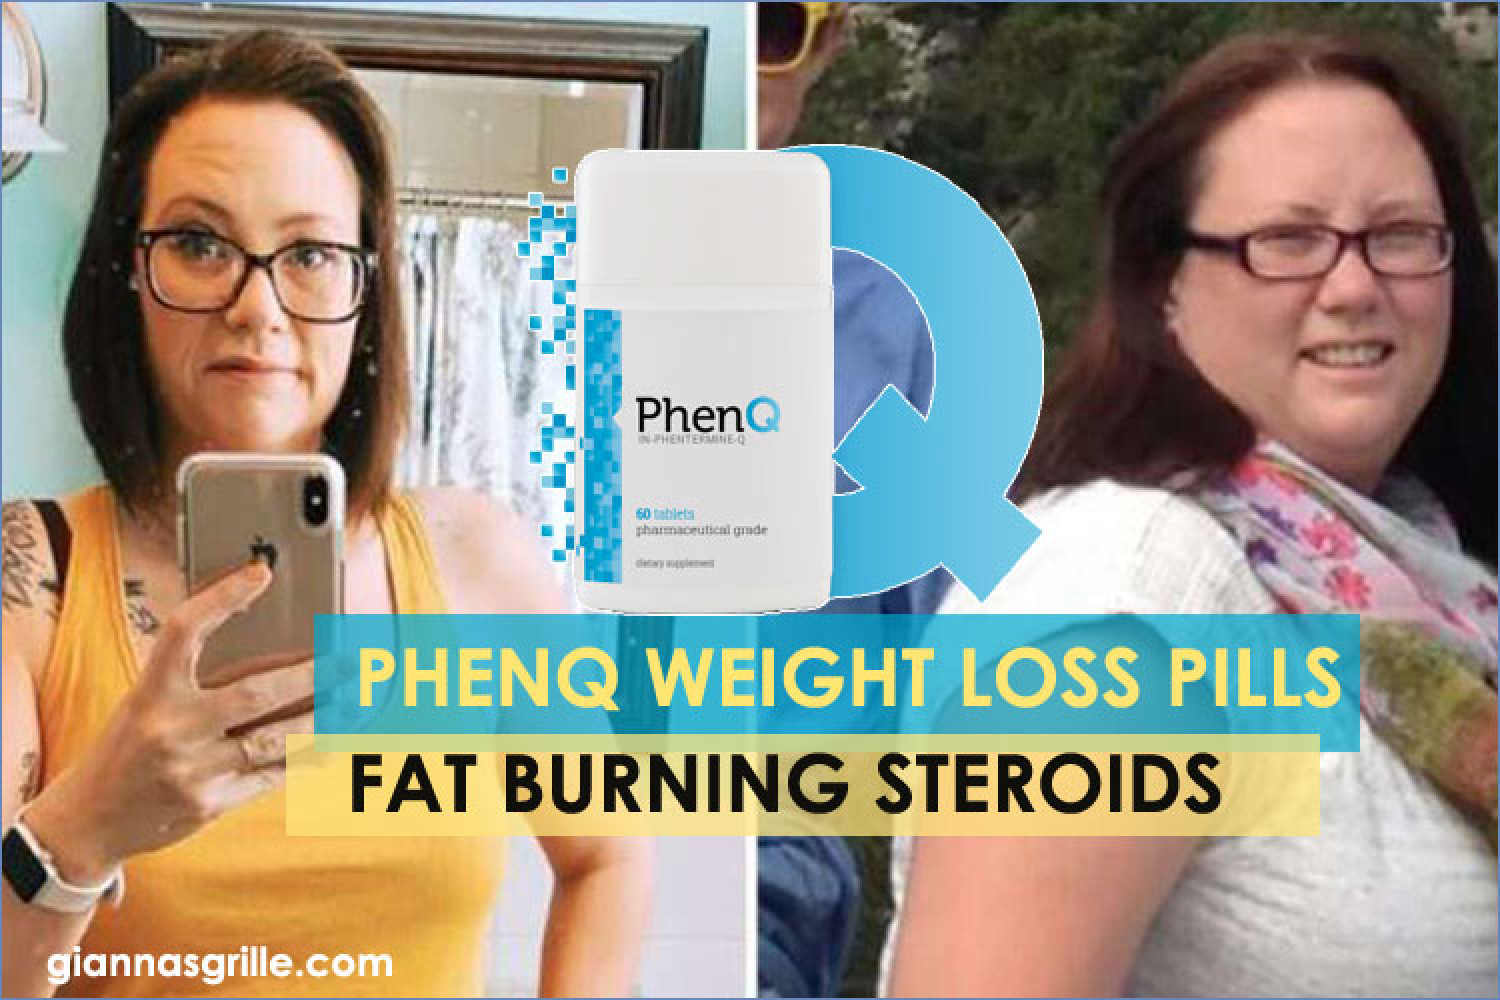 Phenq Diet Pills Review by Giannasgrille Infographic